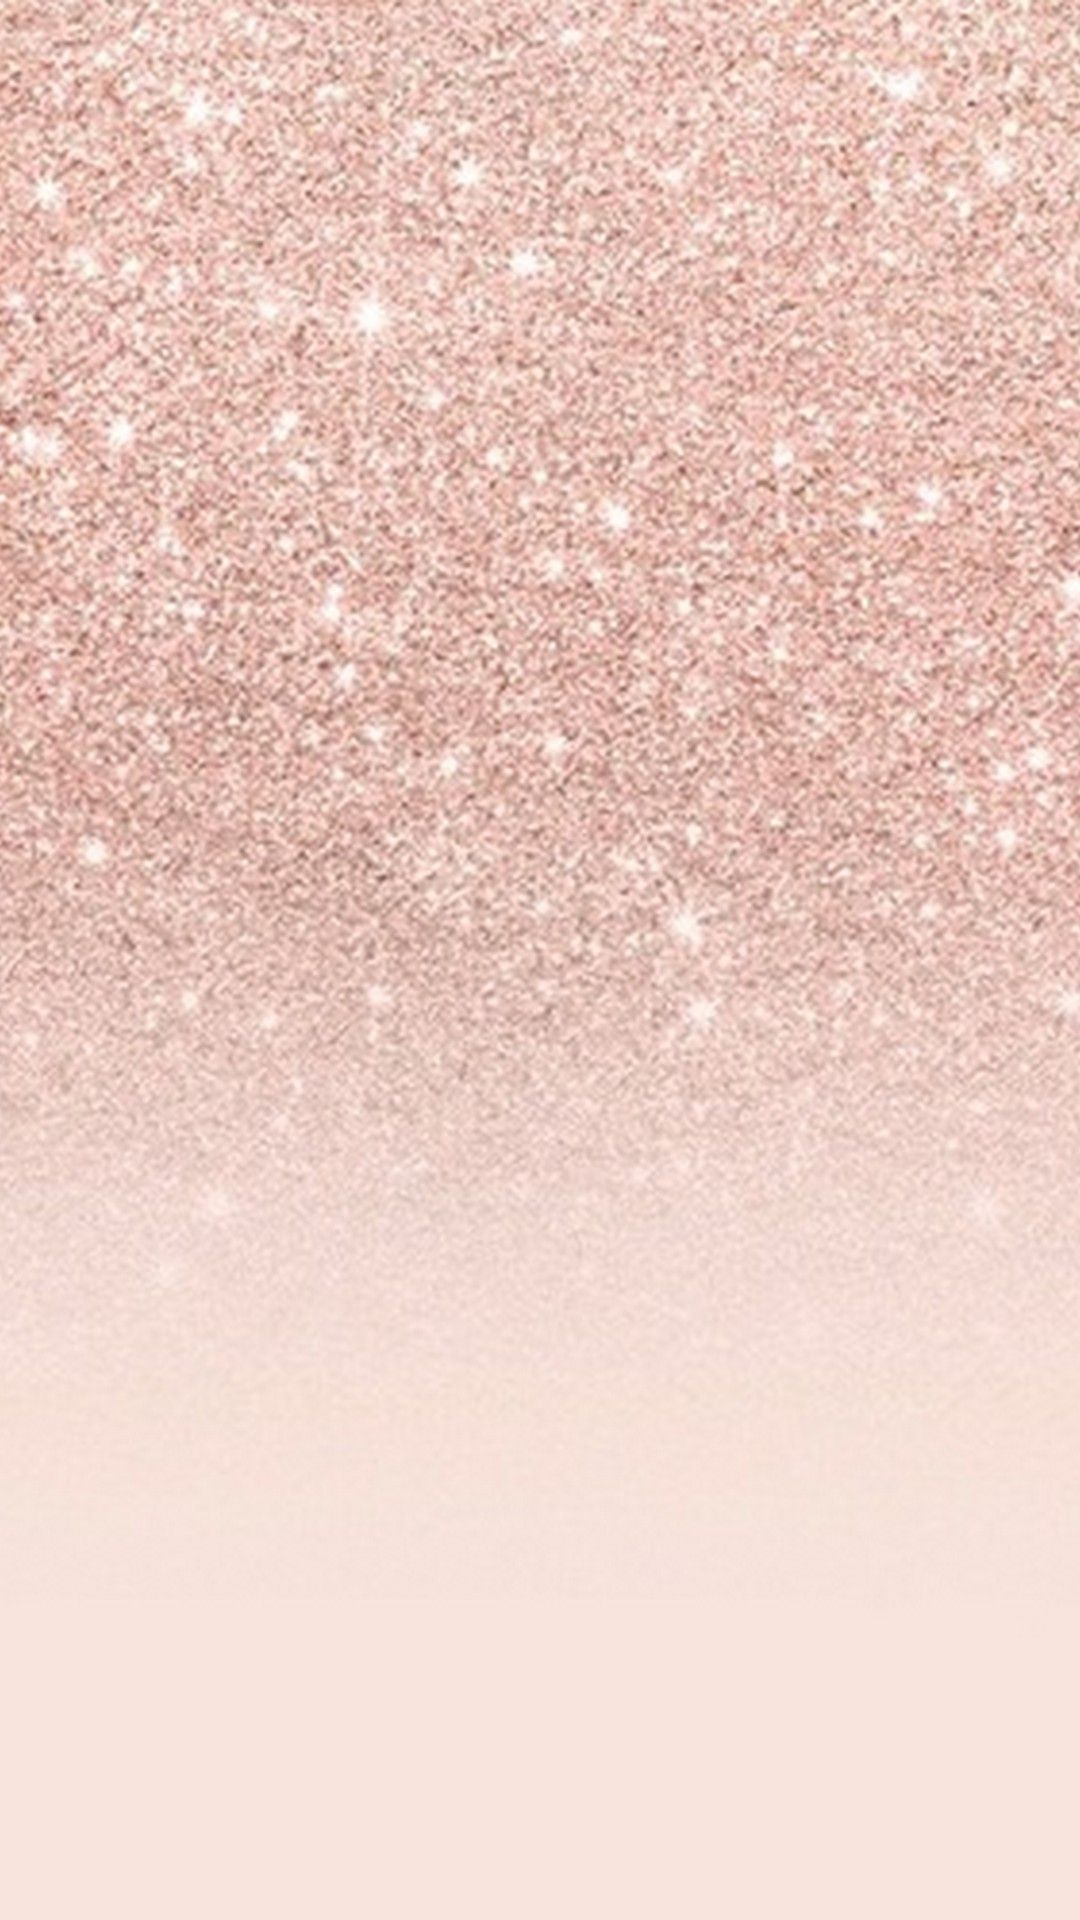 Wallpaper rose gold glitter android 2019 wallpapers - Rose gold background for iphone ...